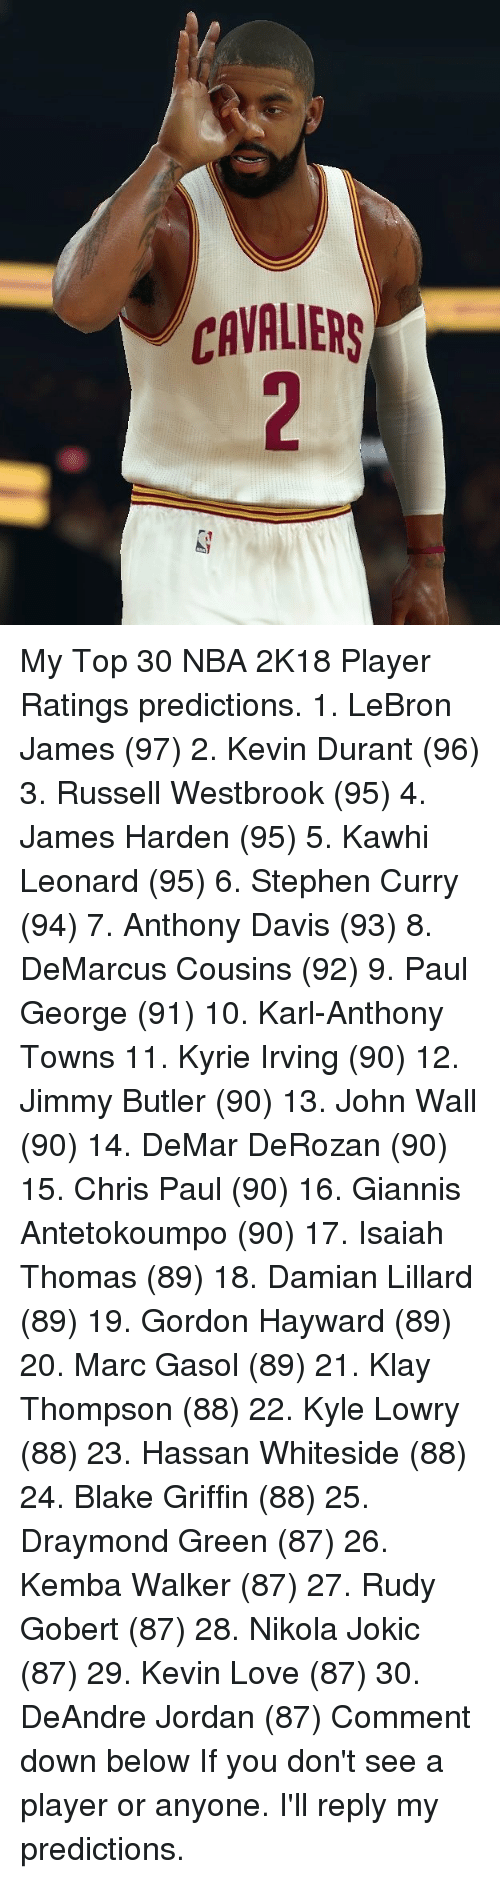 Blake Griffin, Chris Paul, and DeAndre Jordan: CAVALIERS My Top 30 NBA 2K18 Player Ratings predictions. 1. LeBron James (97) 2. Kevin Durant (96) 3. Russell Westbrook (95) 4. James Harden (95) 5. Kawhi Leonard (95) 6. Stephen Curry (94) 7. Anthony Davis (93) 8. DeMarcus Cousins (92) 9. Paul George (91) 10. Karl-Anthony Towns 11. Kyrie Irving (90) 12. Jimmy Butler (90) 13. John Wall (90) 14. DeMar DeRozan (90) 15. Chris Paul (90) 16. Giannis Antetokoumpo (90) 17. Isaiah Thomas (89) 18. Damian Lillard (89) 19. Gordon Hayward (89) 20. Marc Gasol (89) 21. Klay Thompson (88) 22. Kyle Lowry (88) 23. Hassan Whiteside (88) 24. Blake Griffin (88) 25. Draymond Green (87) 26. Kemba Walker (87) 27. Rudy Gobert (87) 28. Nikola Jokic (87) 29. Kevin Love (87) 30. DeAndre Jordan (87) Comment down below If you don't see a player or anyone. I'll reply my predictions.